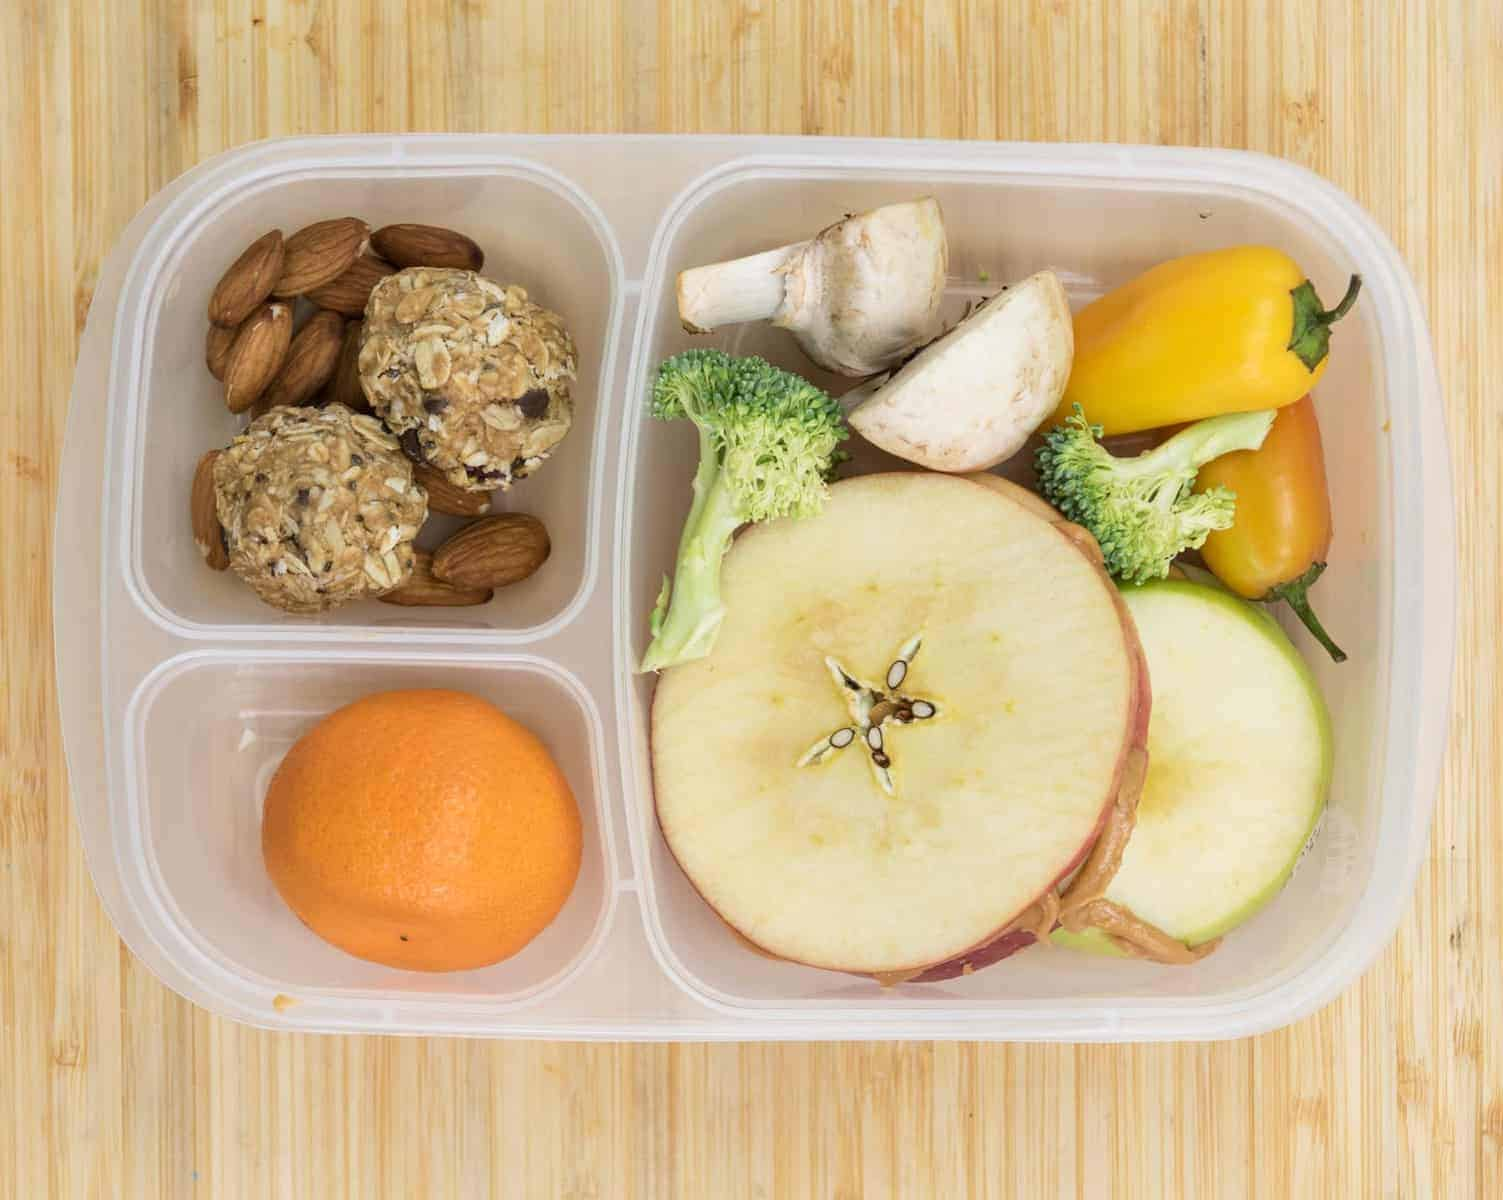 Lunch Box Ideas - Apple Sandwich Lunch Box